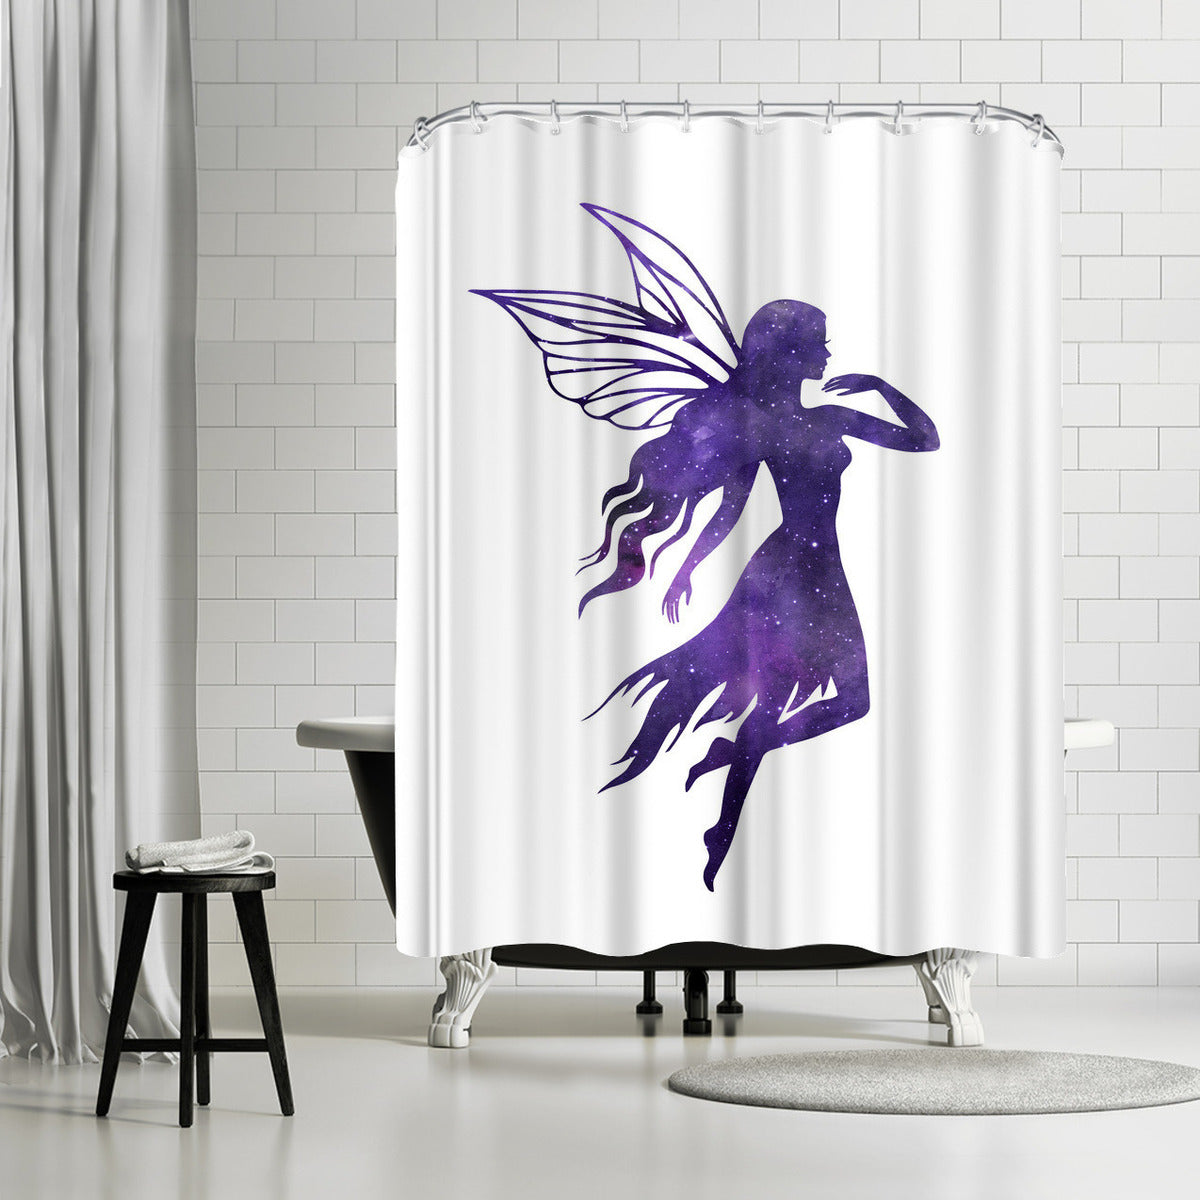 Cosmic Fairy by Peach & Gold Shower Curtain - Shower Curtain - Americanflat